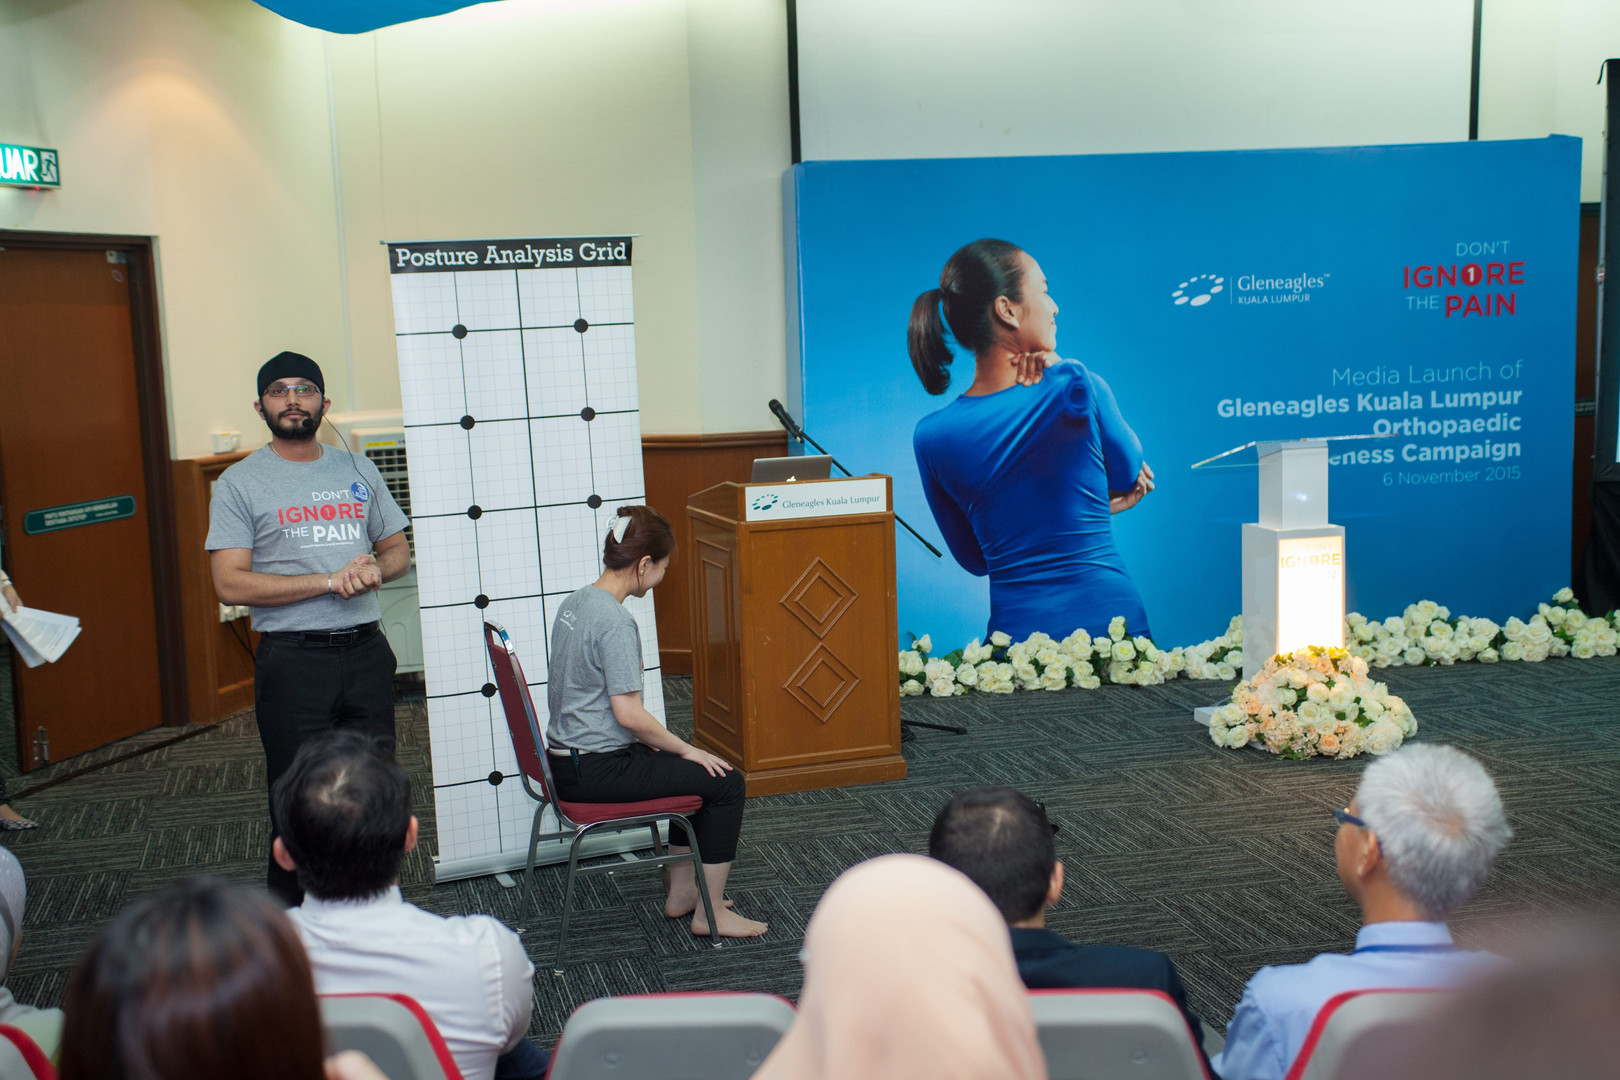 Posture Analysis Presentation by GKL Phy